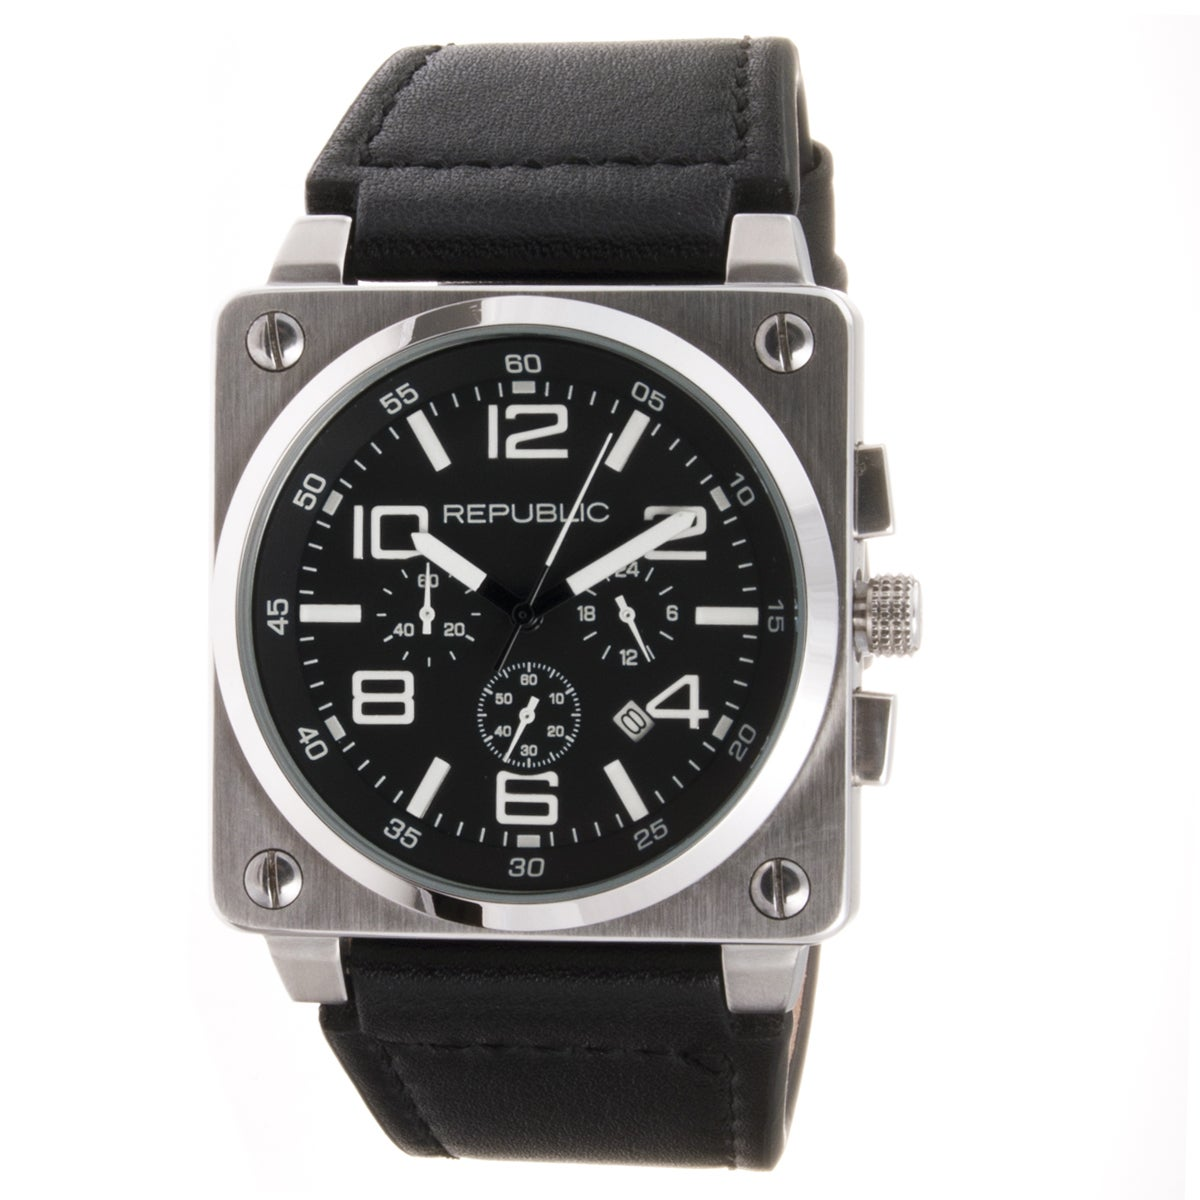 Republic Men's Black Leather Strap Chrono Aviation Watch